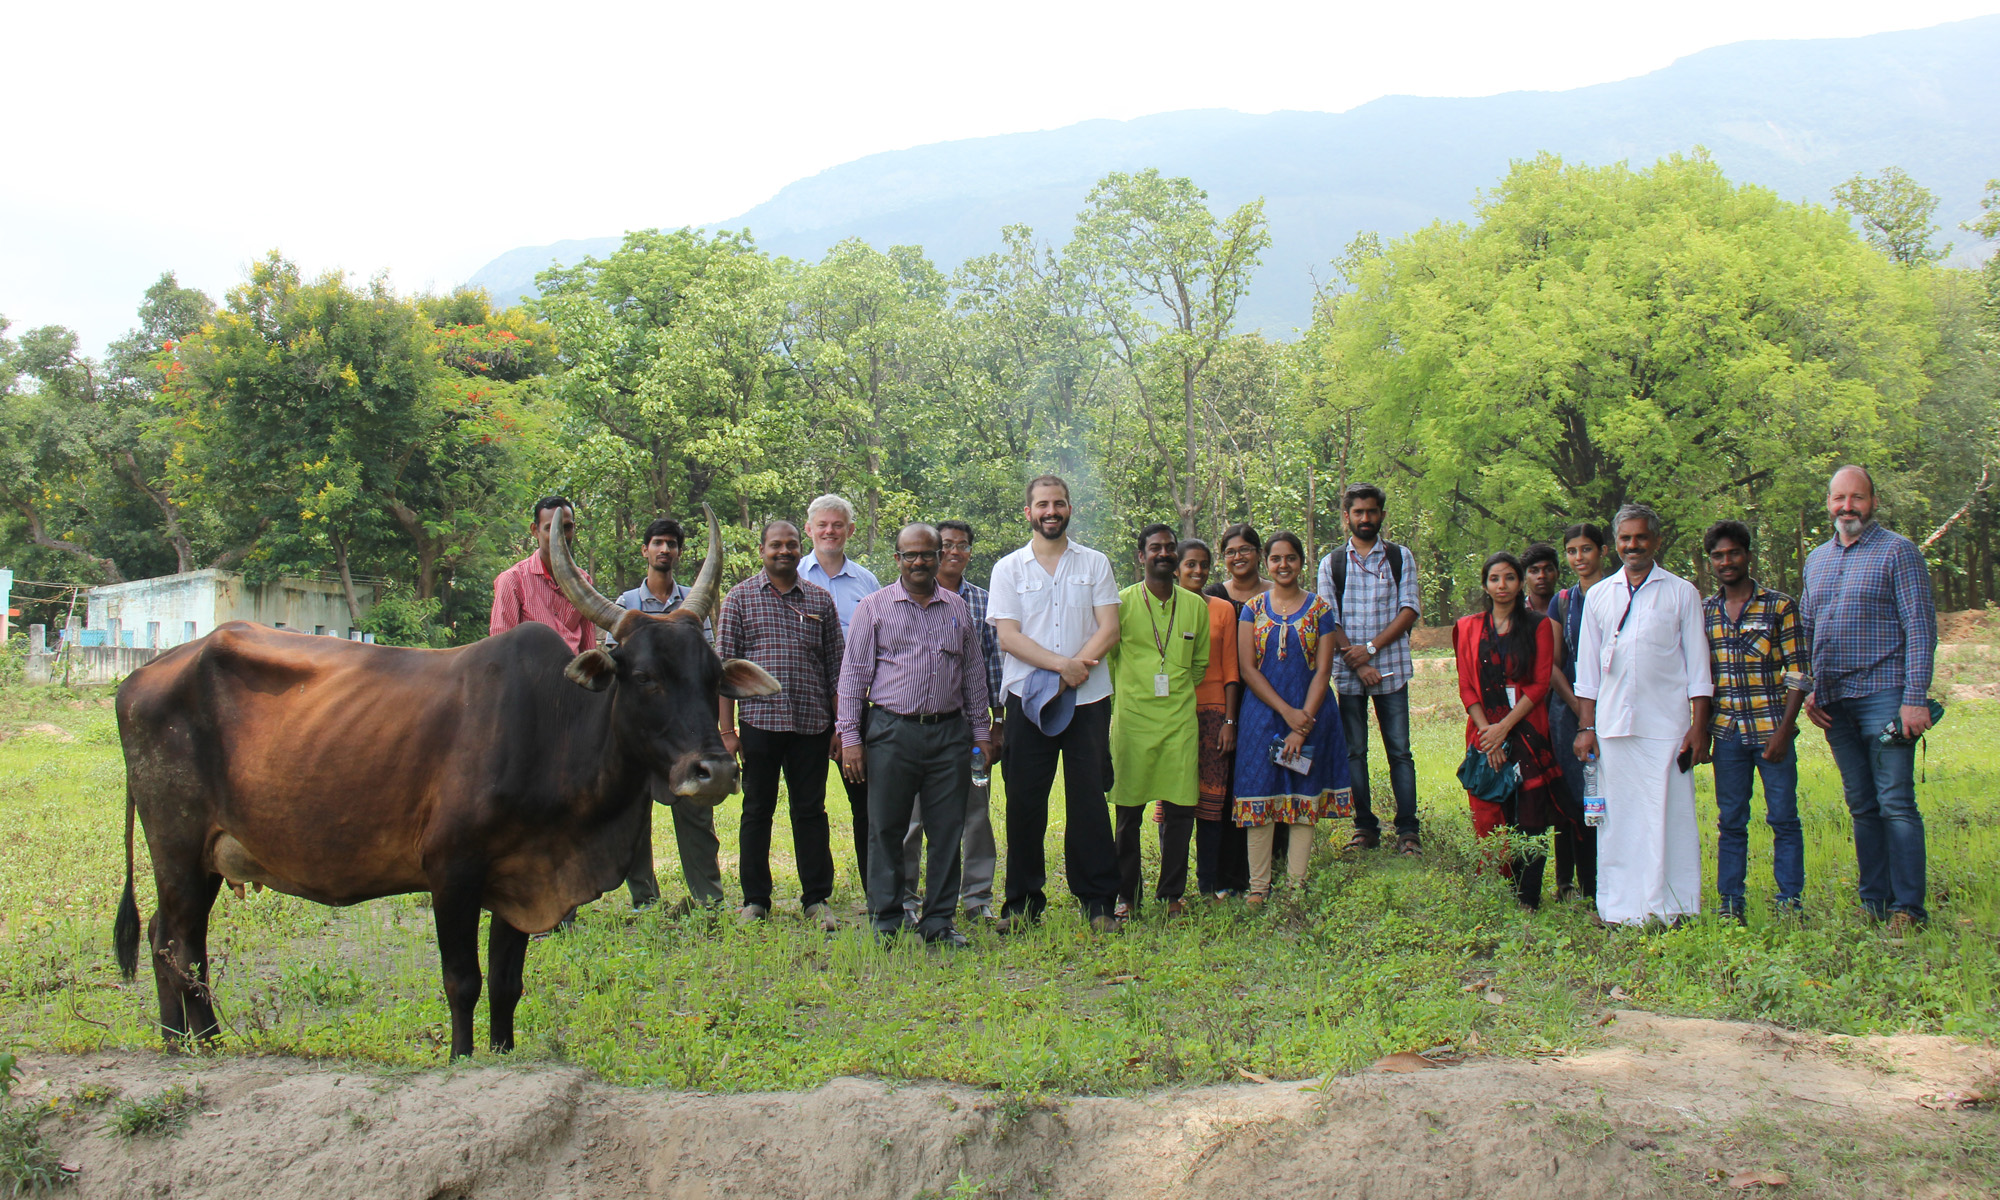 Improving healthcare support for rural communities in India